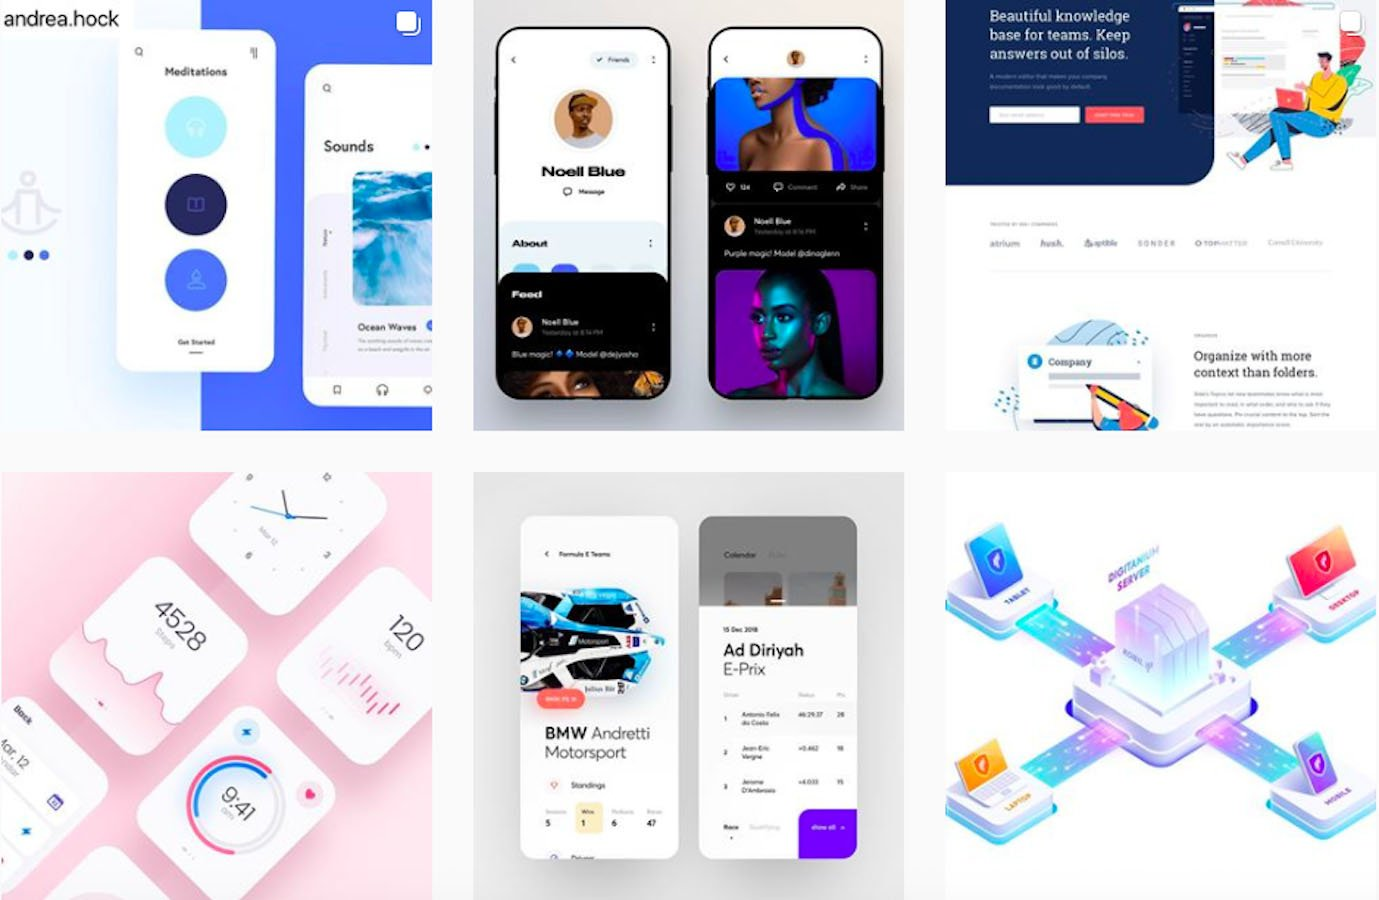 Web Design Inspiration: 110+ Accounts On Instagram and 10+ Best UX & Web Design Books in 2020 - instaui